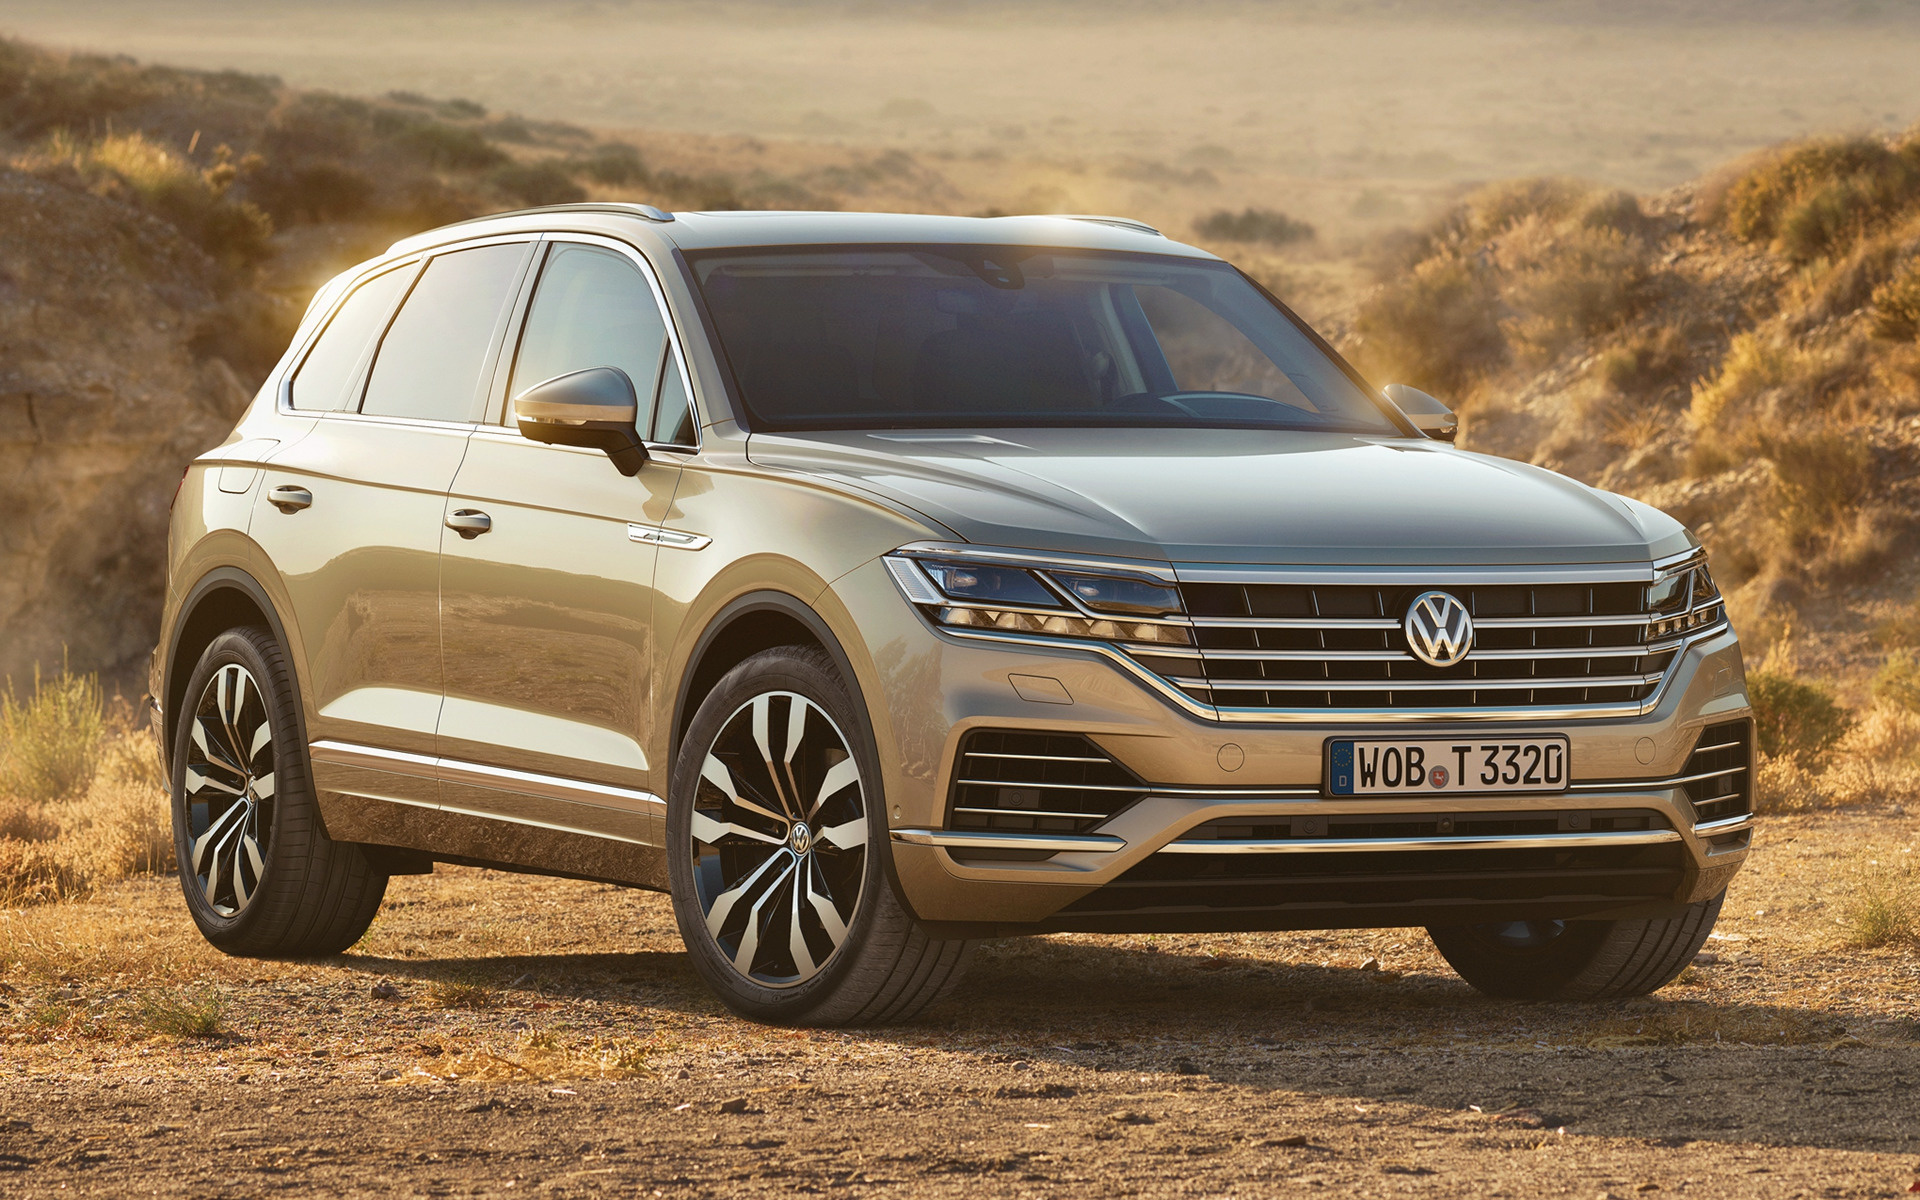 2018 volkswagen touareg wallpapers and hd images car pixel. Black Bedroom Furniture Sets. Home Design Ideas